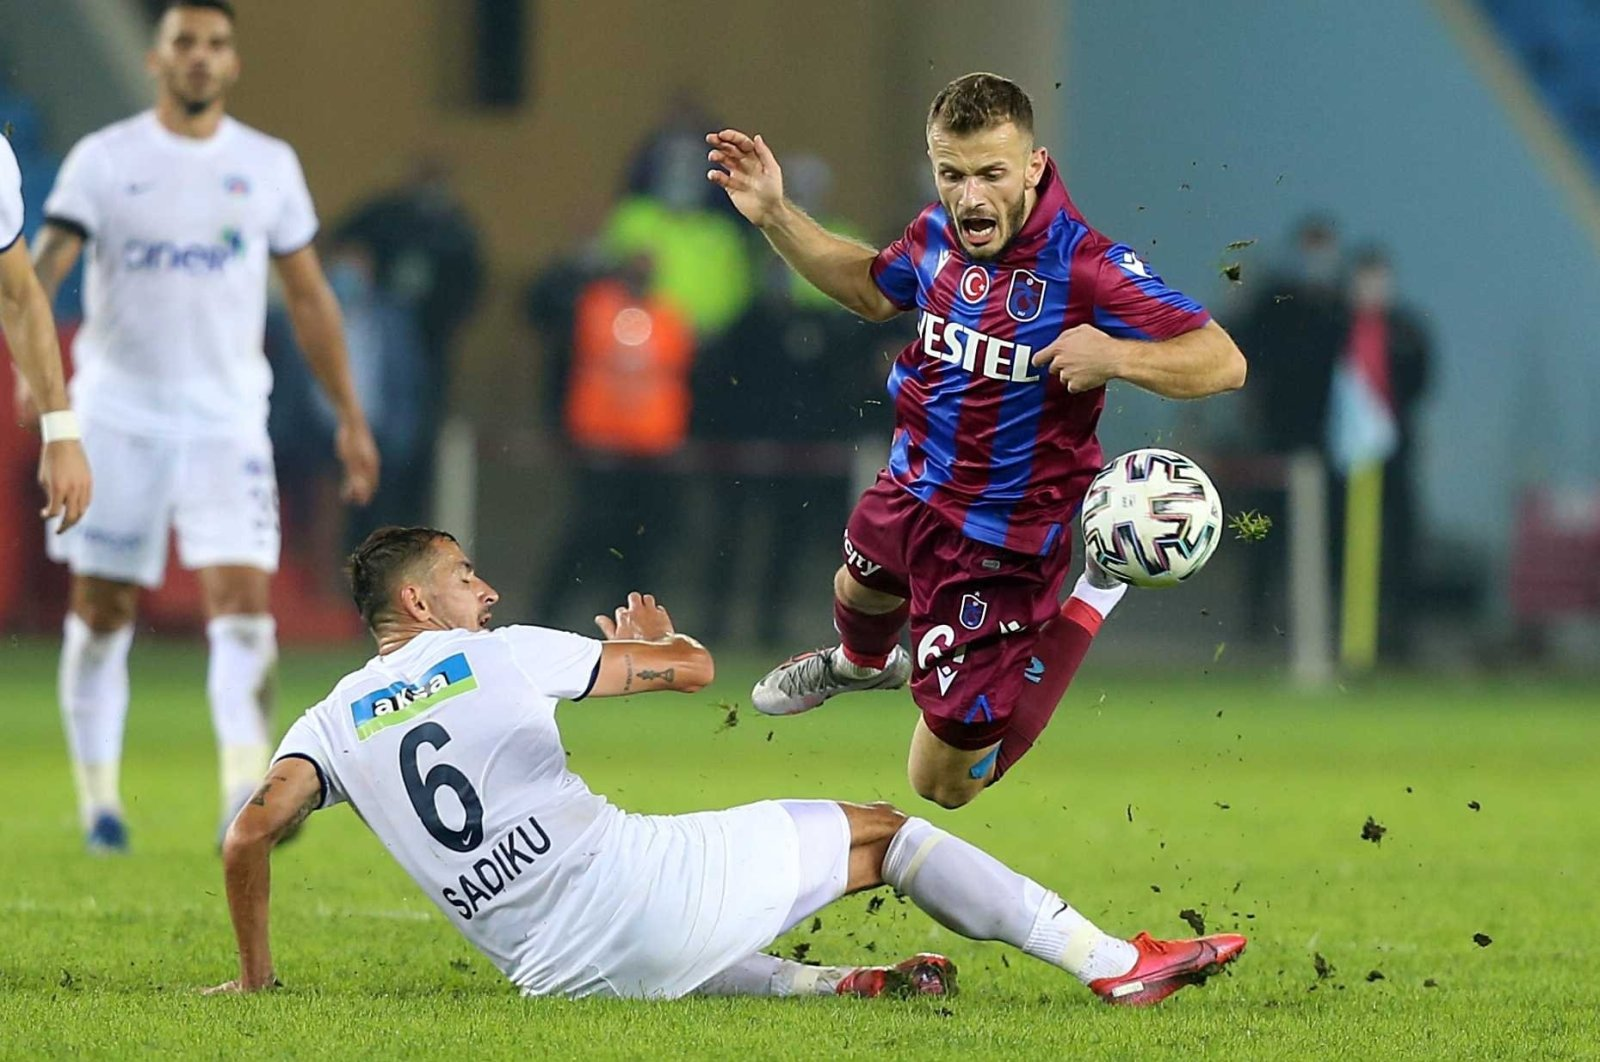 Kasımpaşa's Loret Sadıku tackles Trabzonspor's Abdulkadir Parmak at the Şenol Güneş Stadium in northeastern Trabzon province on Oct. 31, 2020. (AA Photo)